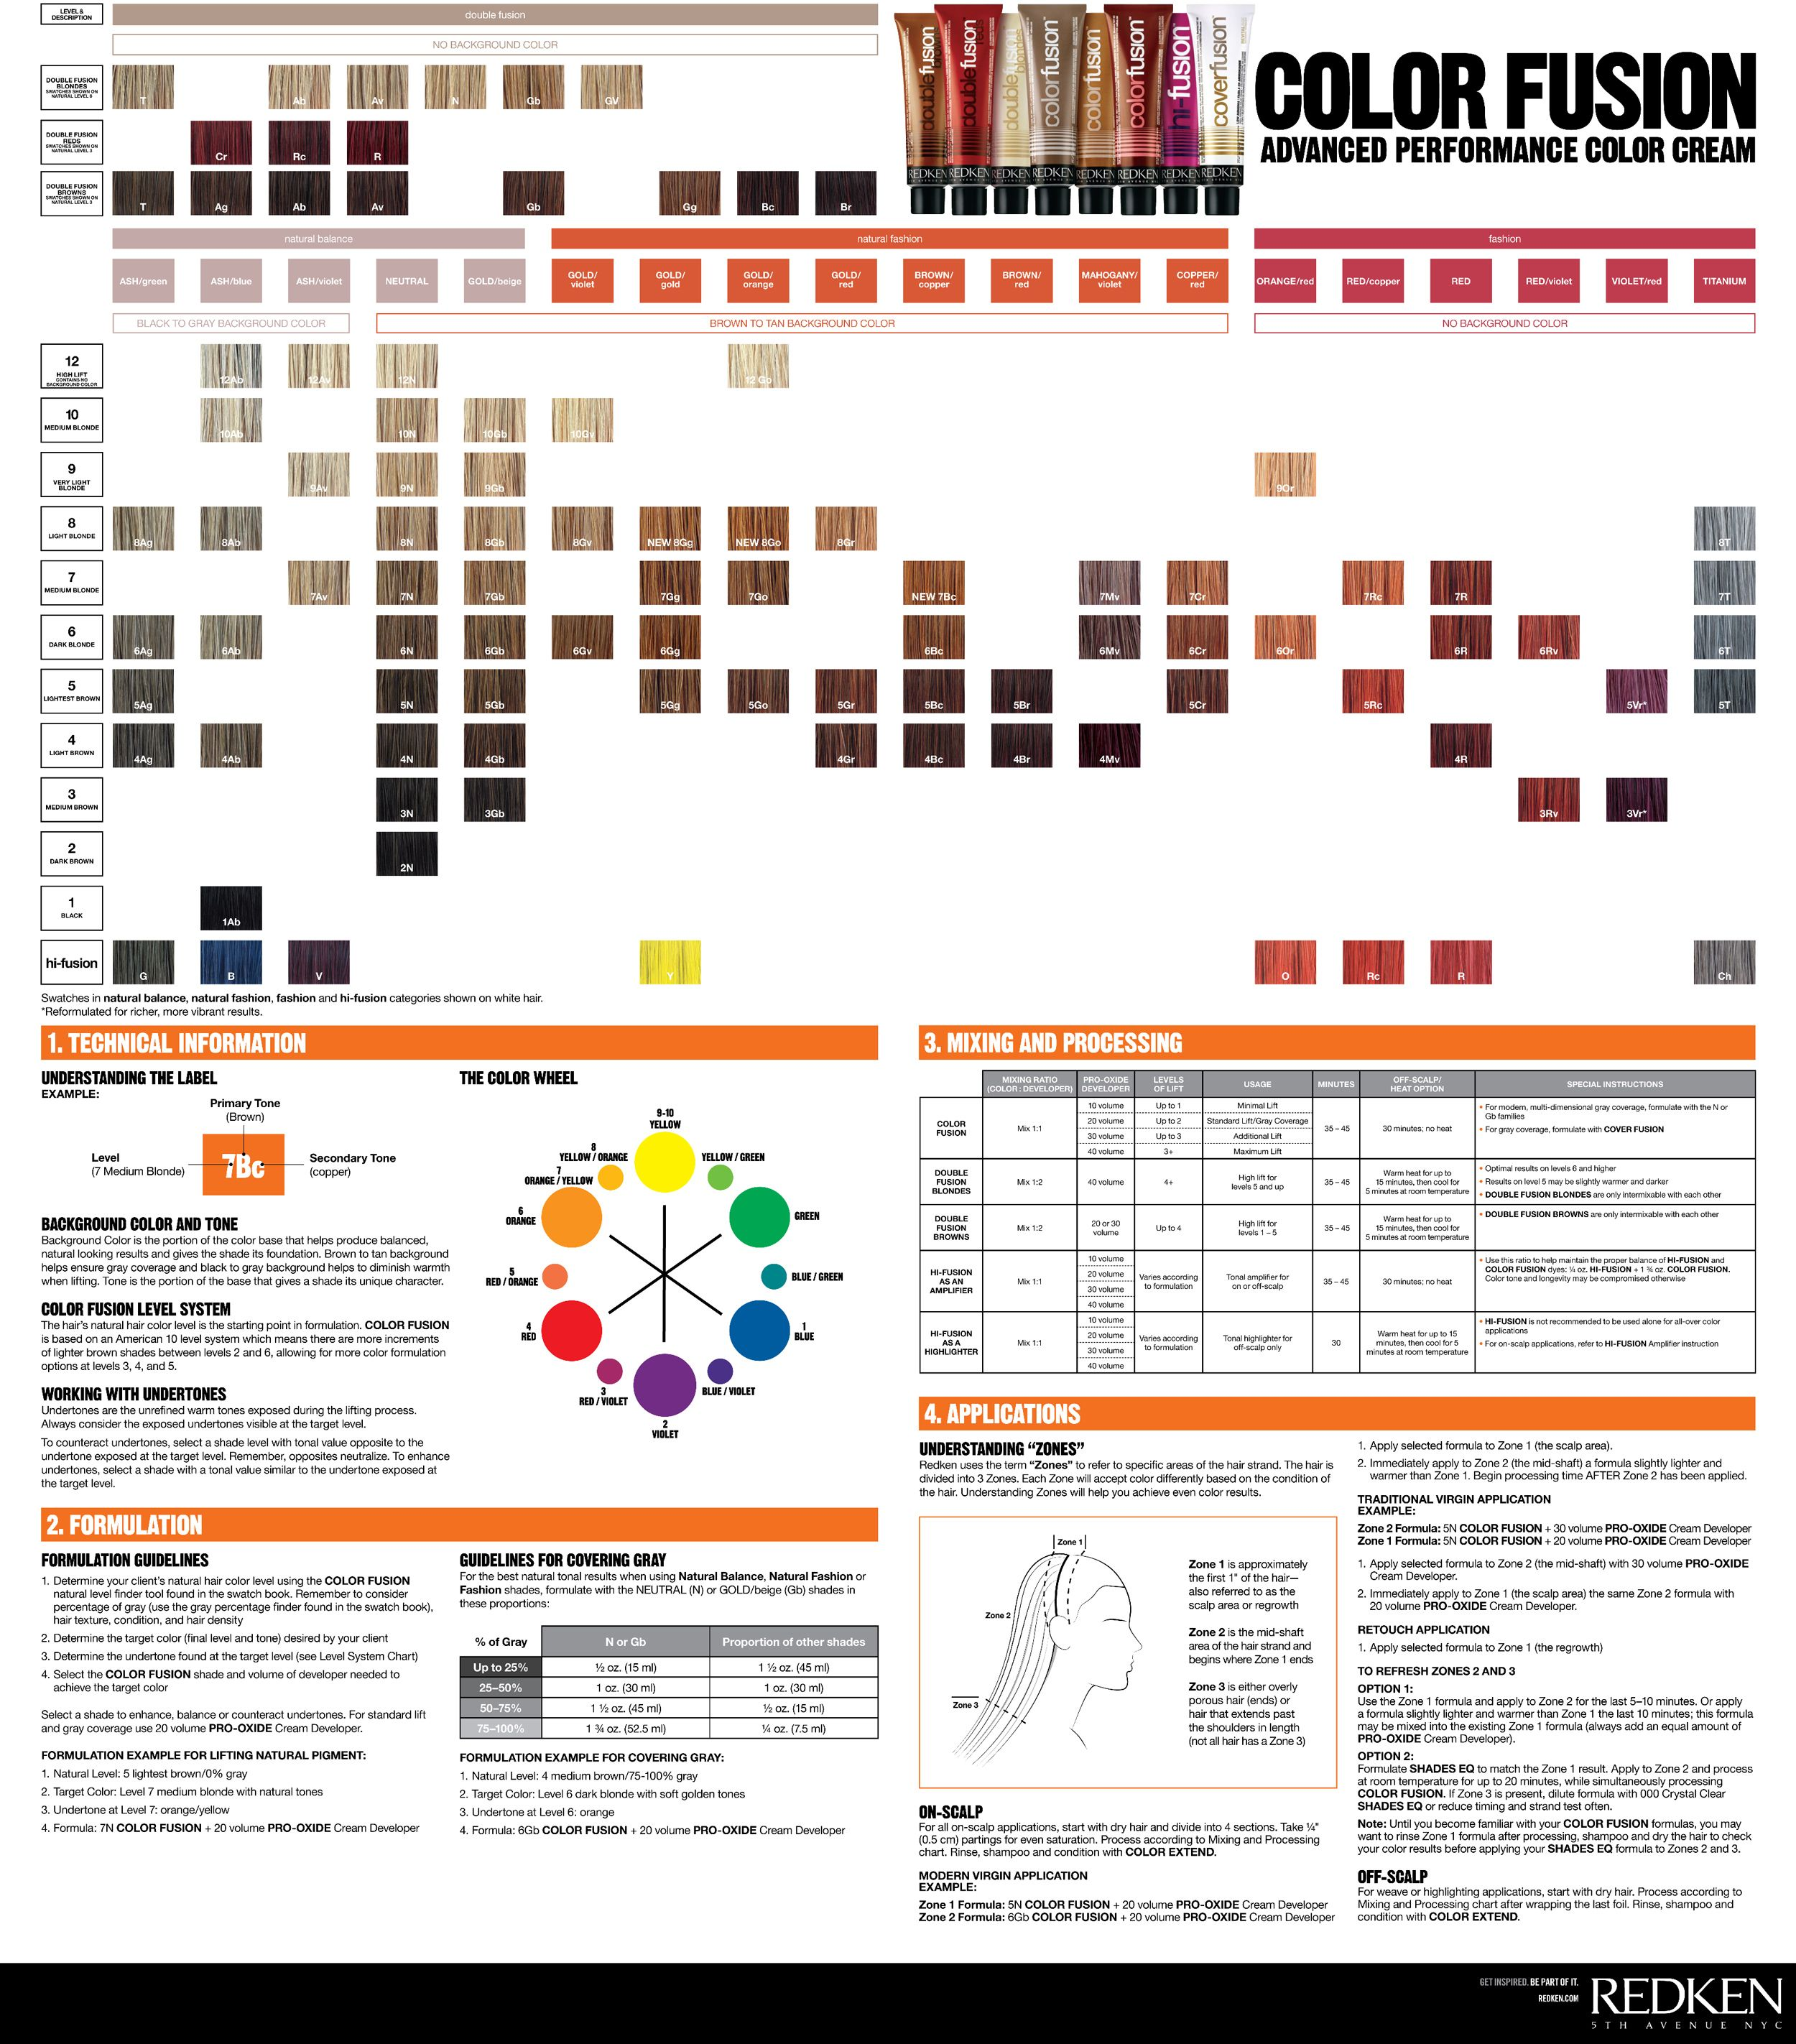 Redken color fusion chart google search hair color pinterest redken color fusion chart google search nvjuhfo Gallery